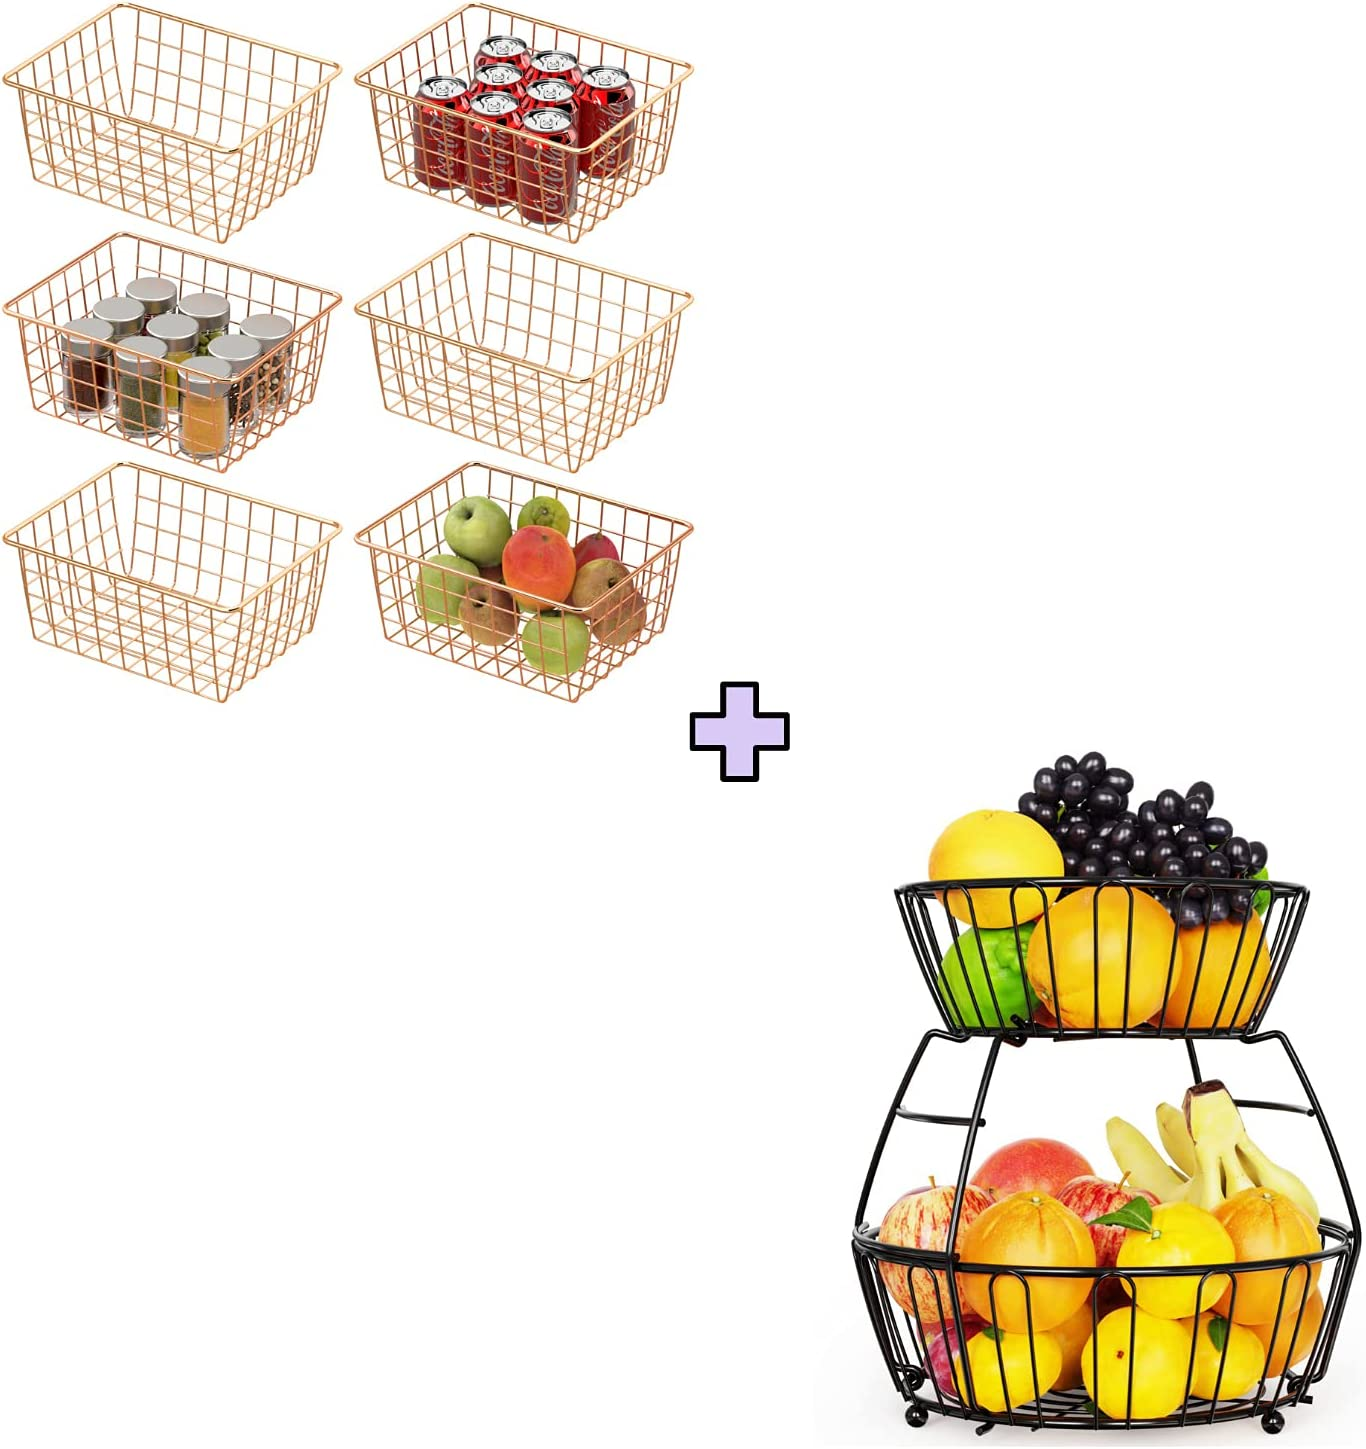 Wire Baskets Cambond Max Max 48% OFF 89% OFF 6 Pack B Metal Basket Durable Storage